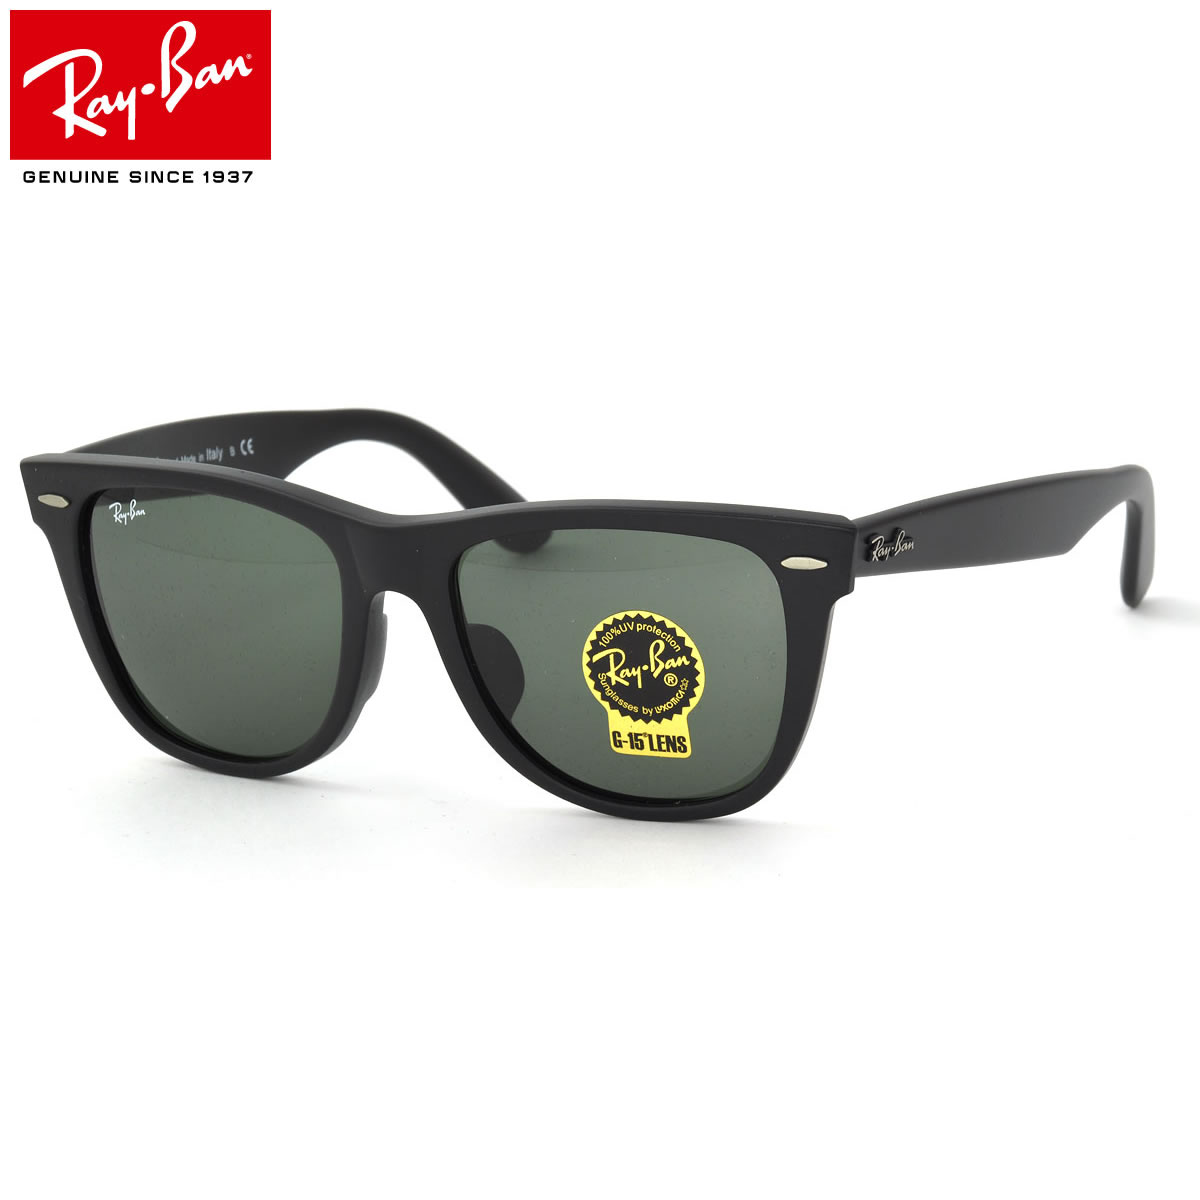 f44a8bed4ce Ray-Ban Sunglasses RB2140F 901S 54size WAYFARER FULL FIT (for Asian)  GENUINE NEW rayban ray ban